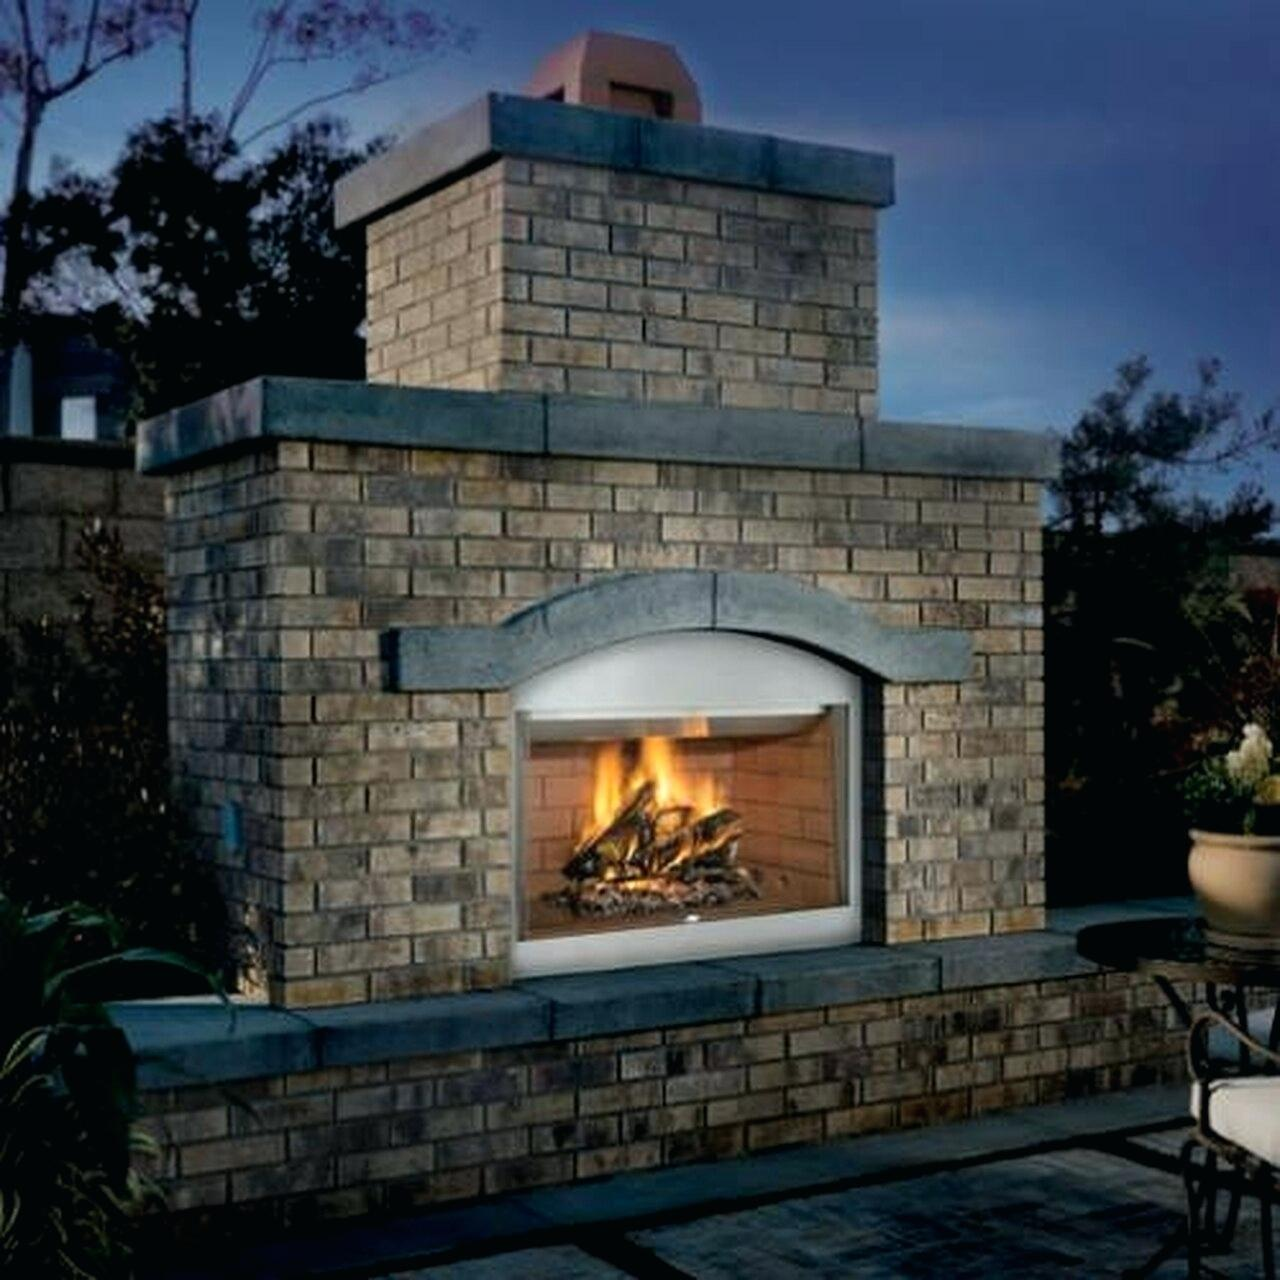 steel fireplace inserts stainless steel outdoor fireplace inserts stainless steel fireplace inserts